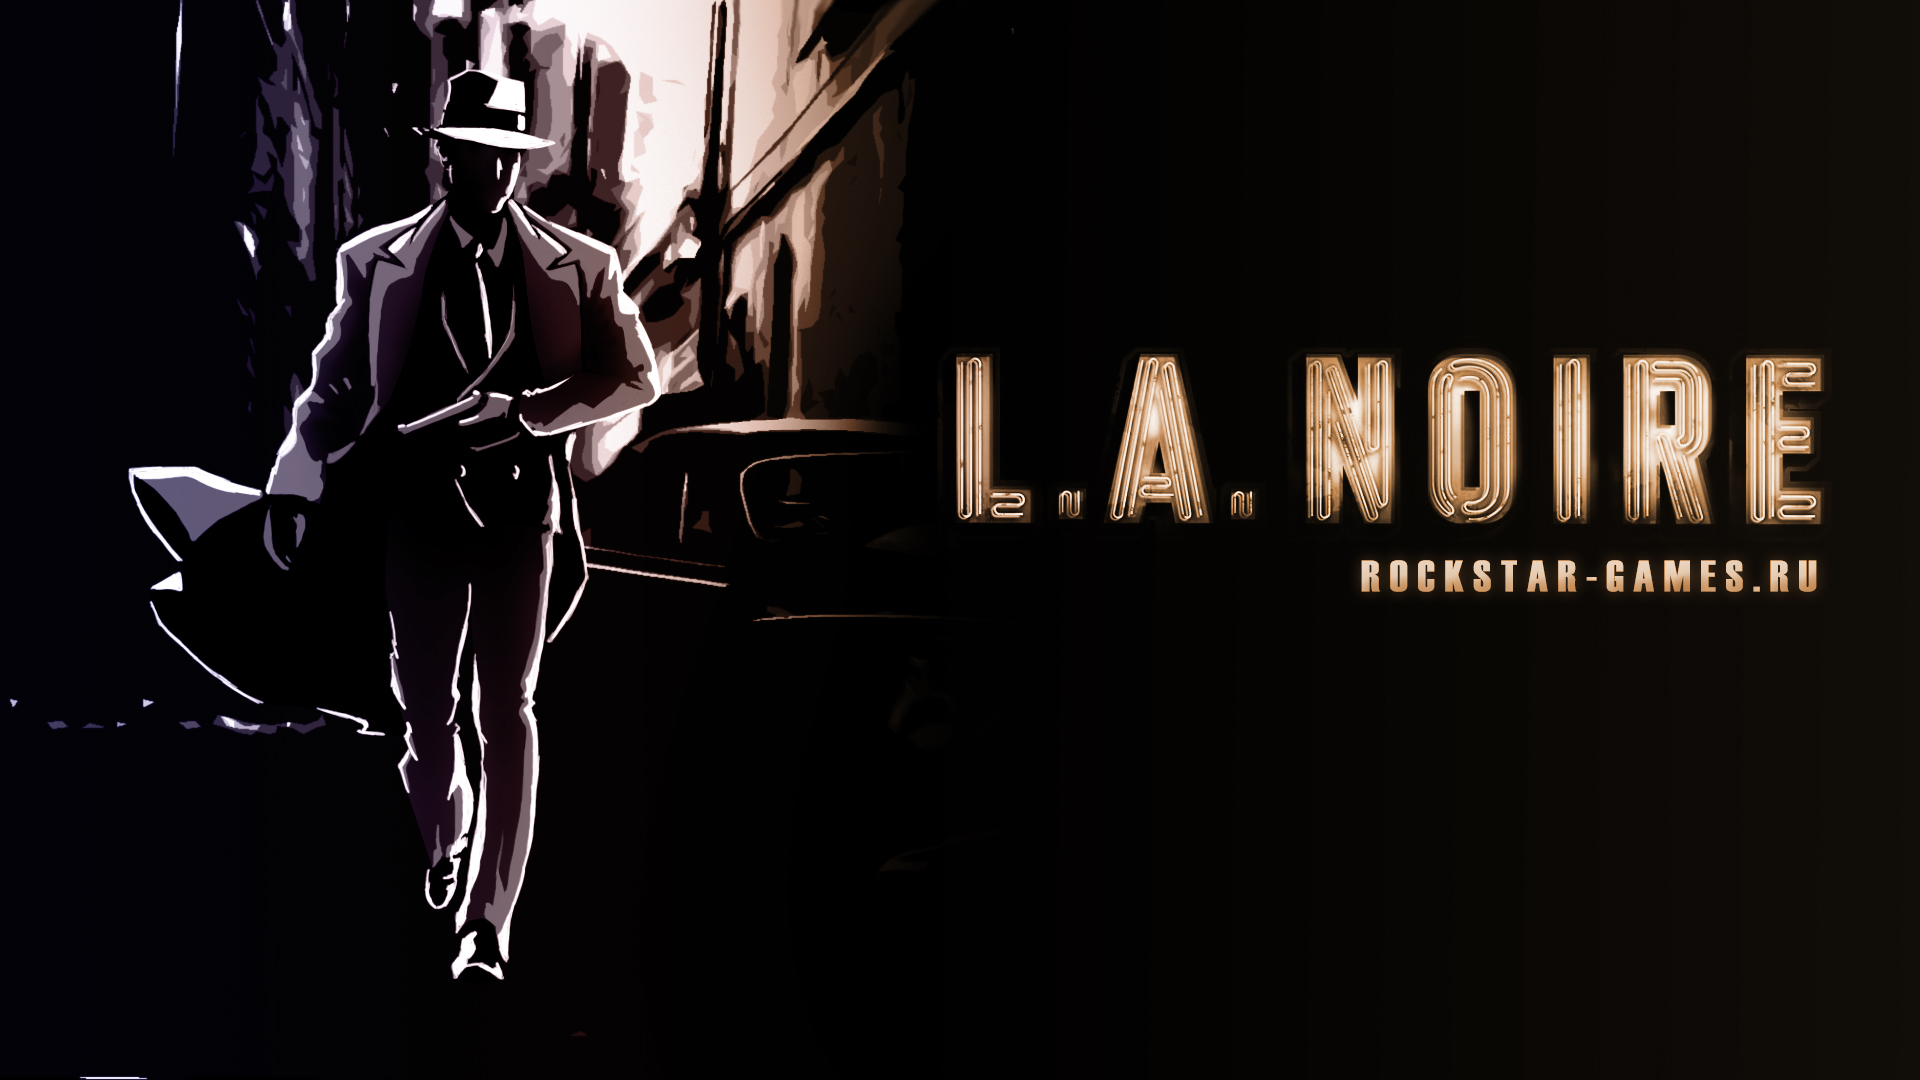 L.A. Noire by DizNot on DeviantArt